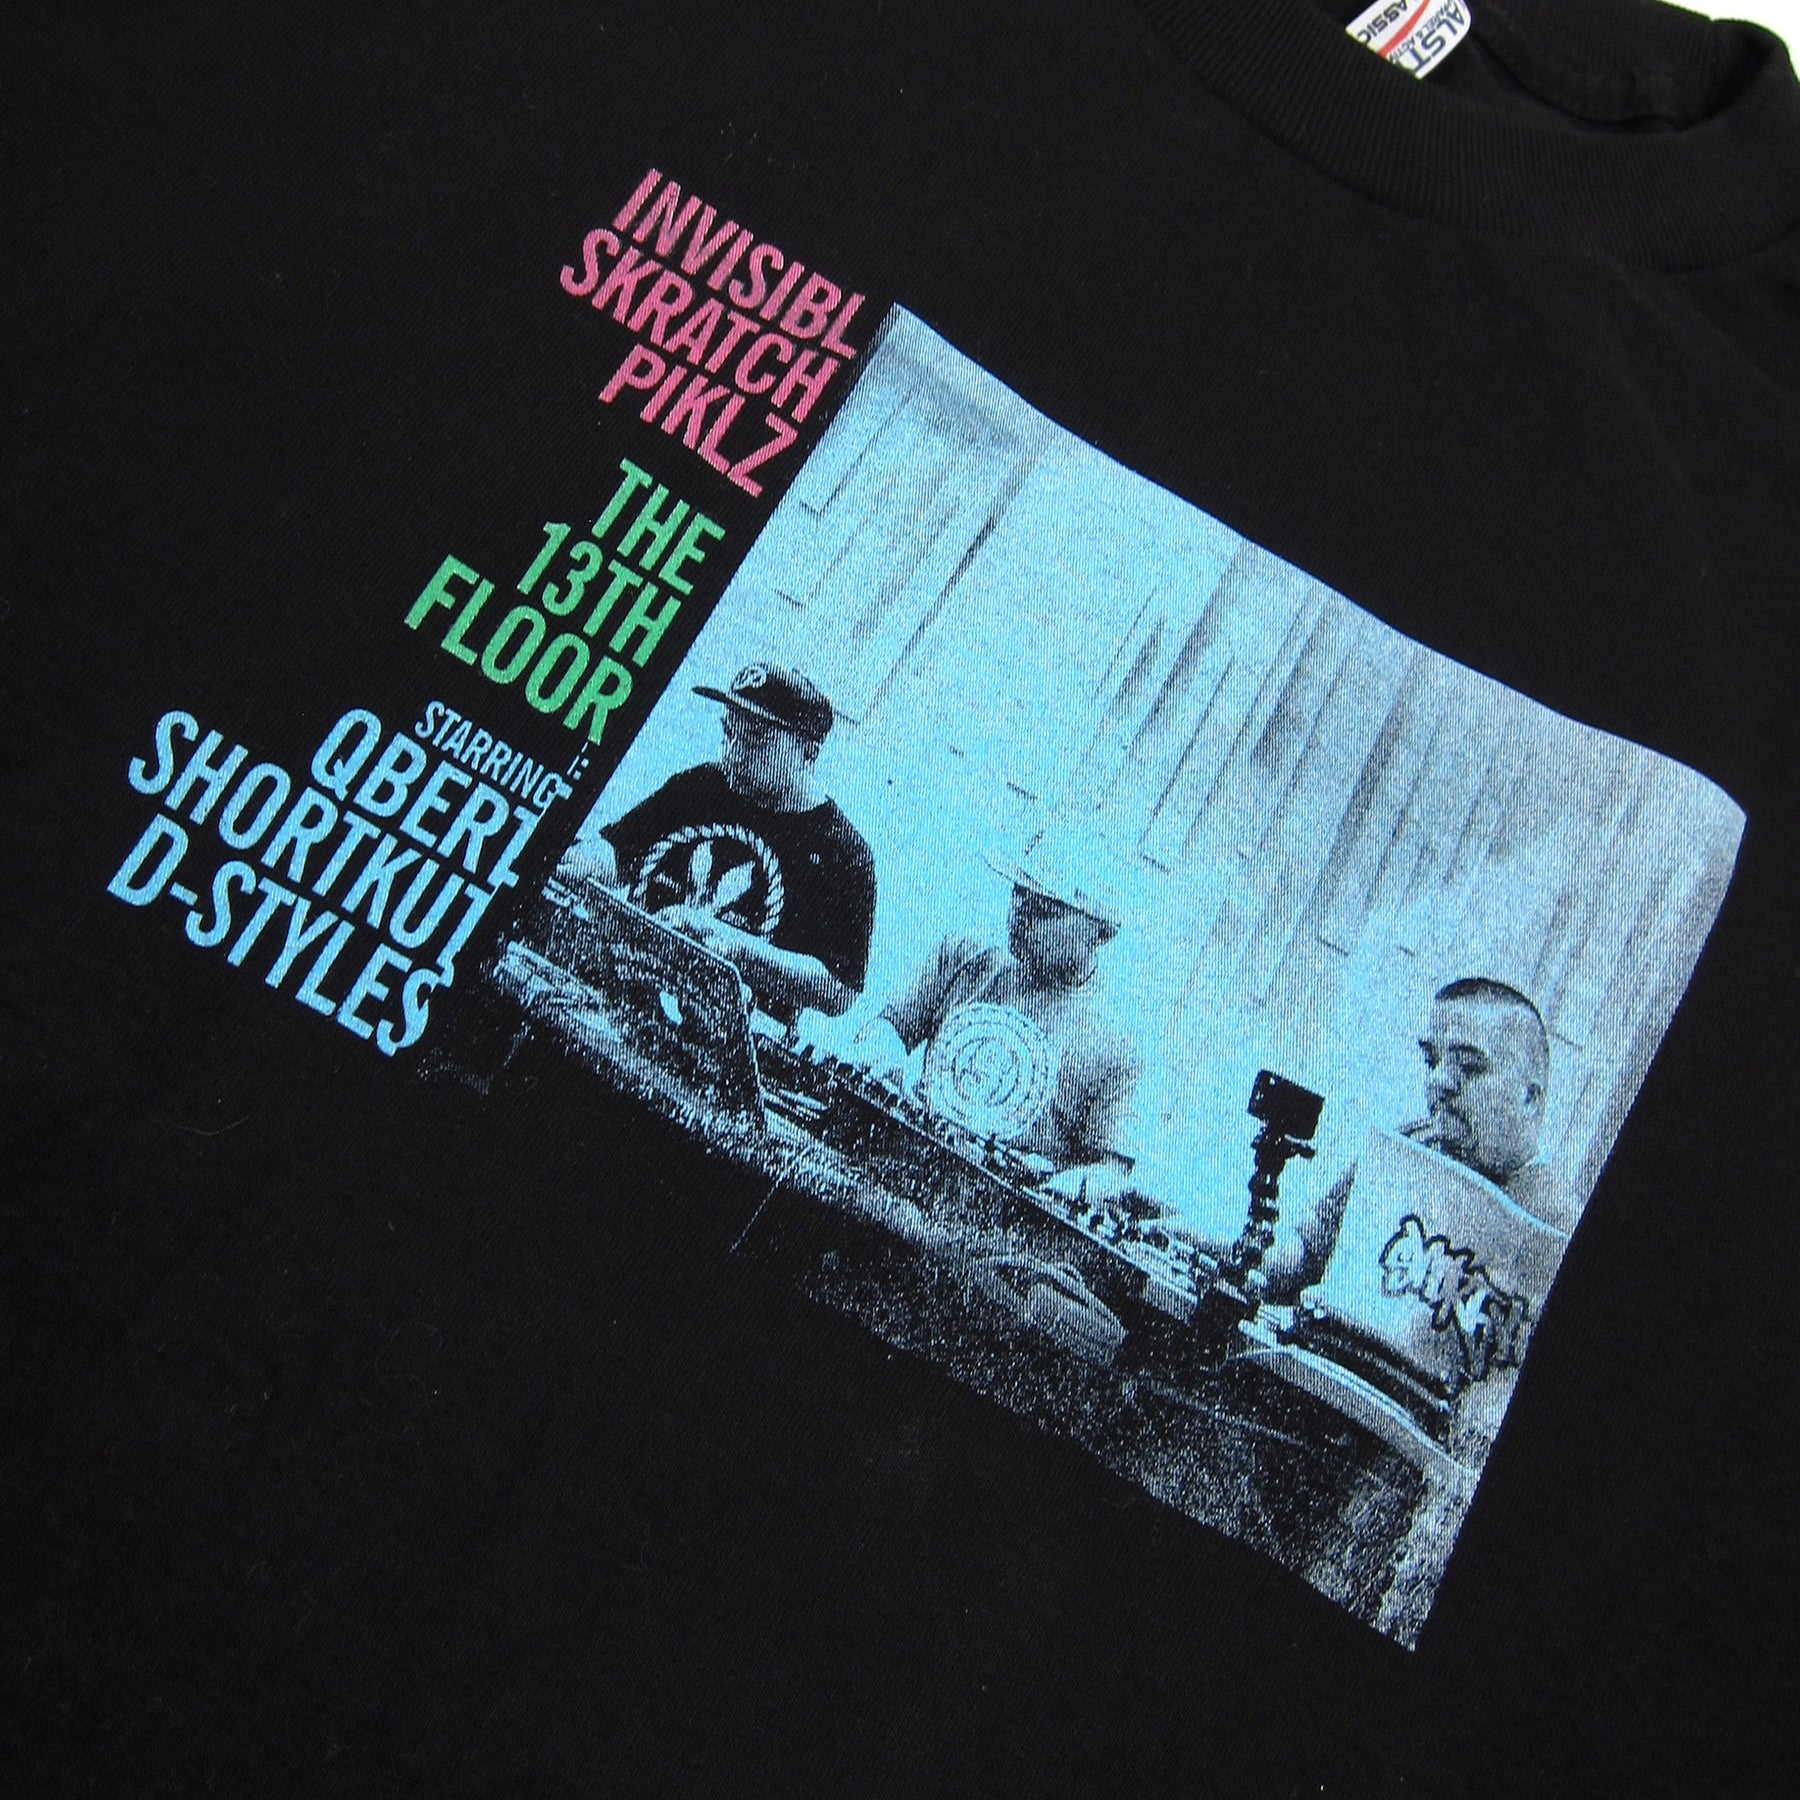 Invisibl skratch piklz the 13th floor album shirt black for 13th floor pitch black